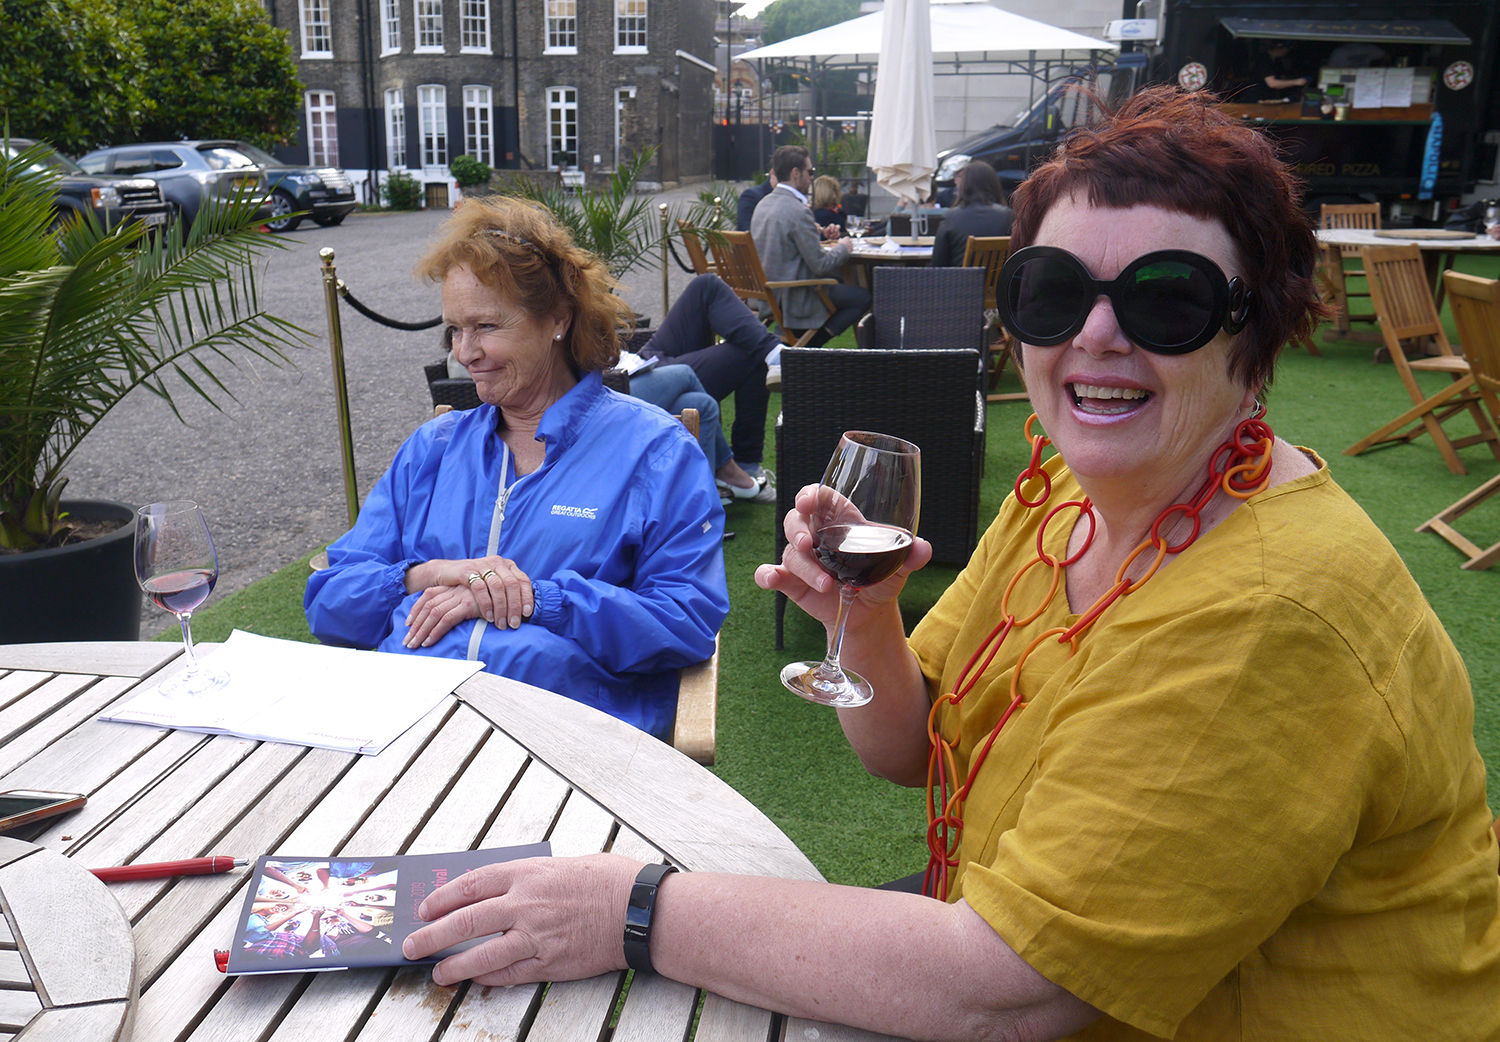 A good glass of wine and some stylish Prada sunglasses: now that's class!